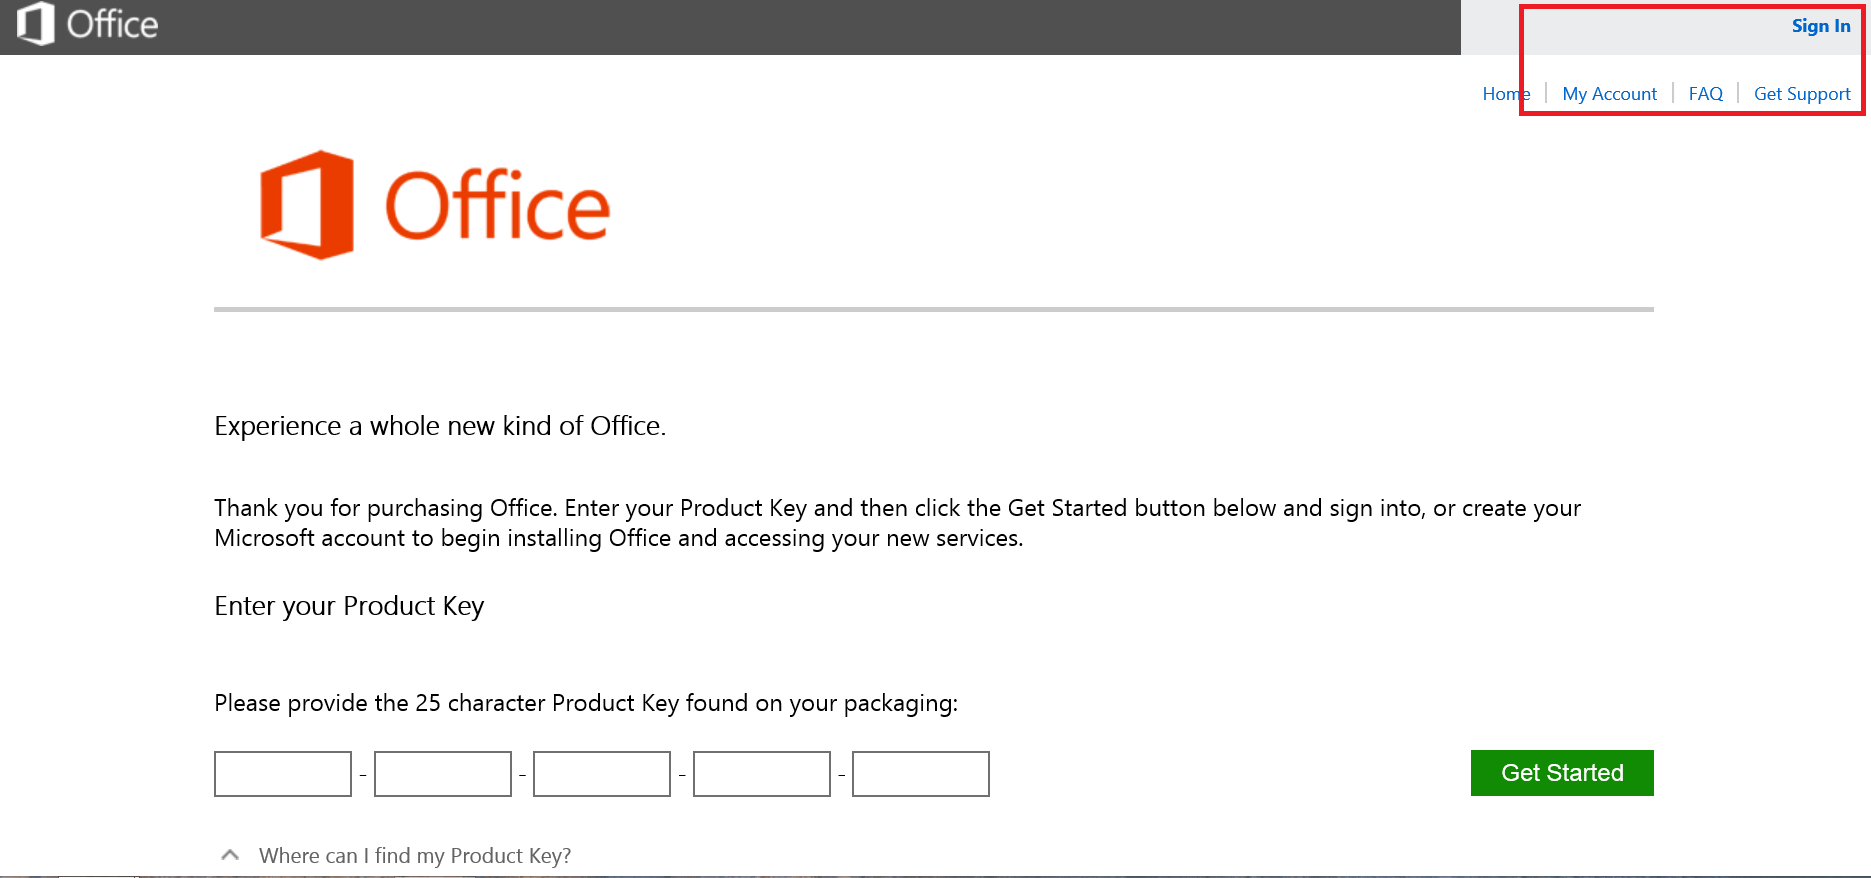 where can i find my product key on my computer for microsoft office